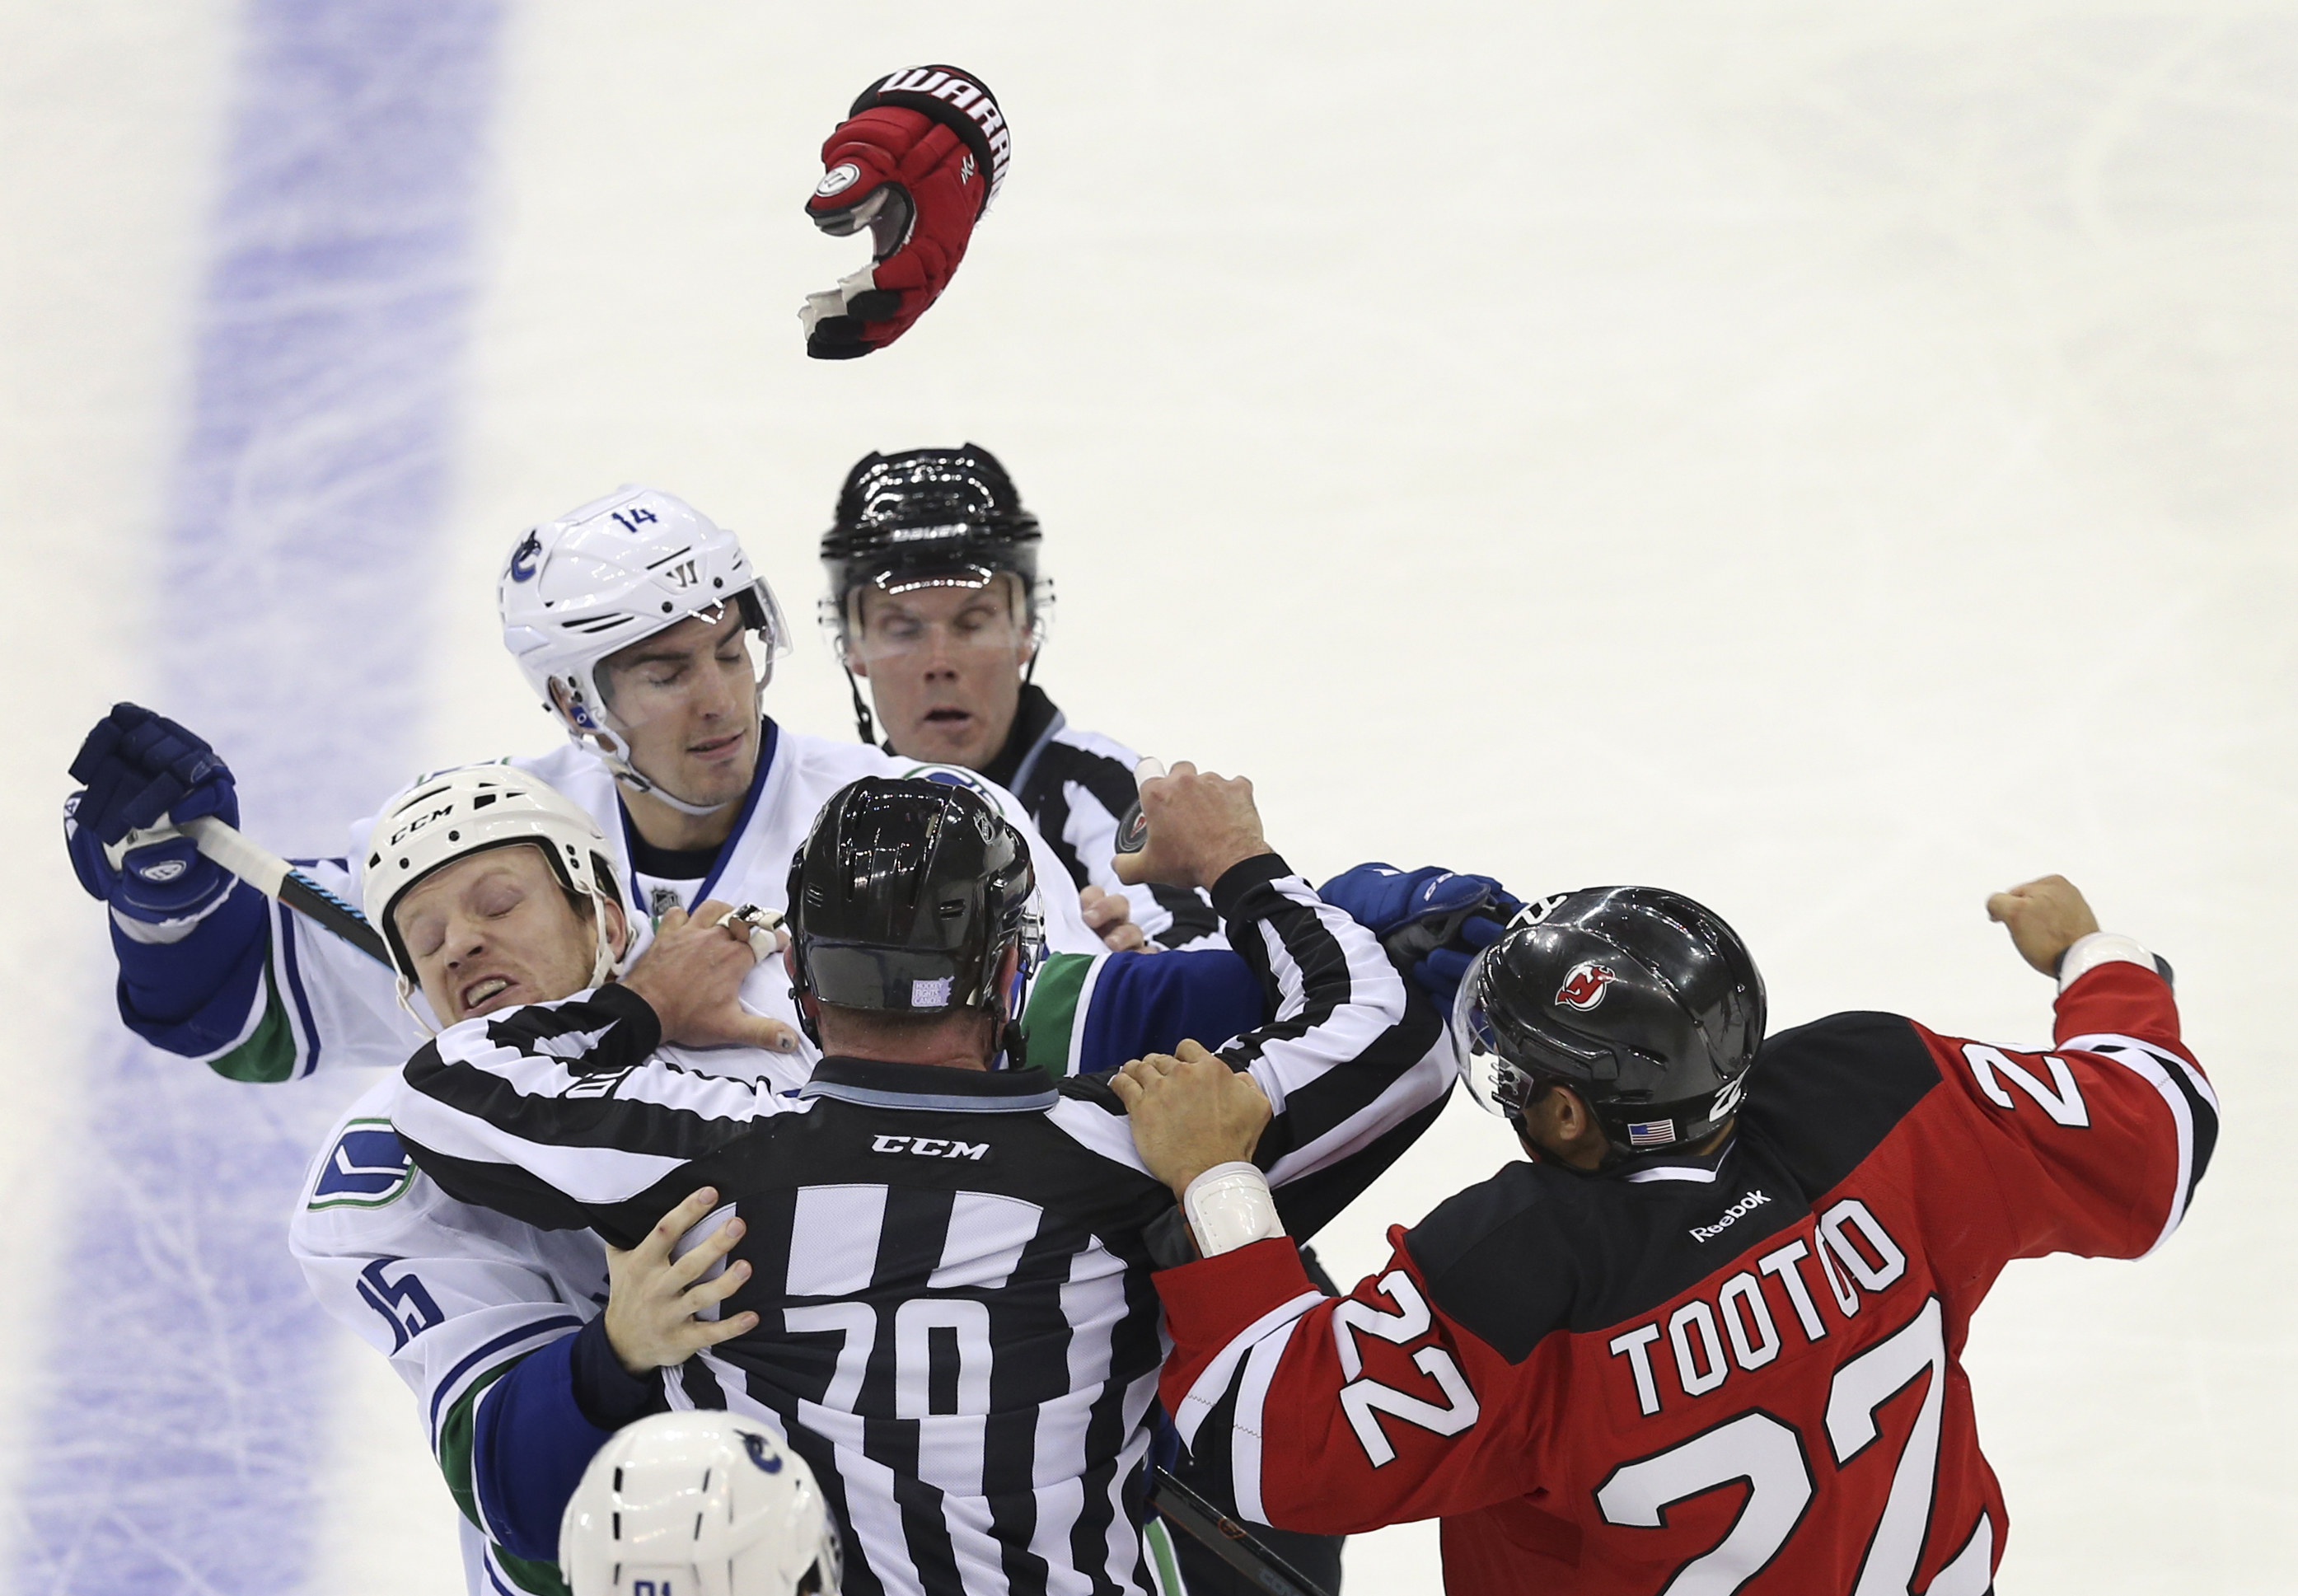 New Jersey Devils right wing Jordin Tootoo (22) fights with Vancouver Canucks right wingers Alexandre Burrows (14) and Derek Dorsett (15) during the second period of an NHL hockey game, Sunday, Nov. 8, 2015, Newark, N.J. The Devils won in overtime 4-3. (A